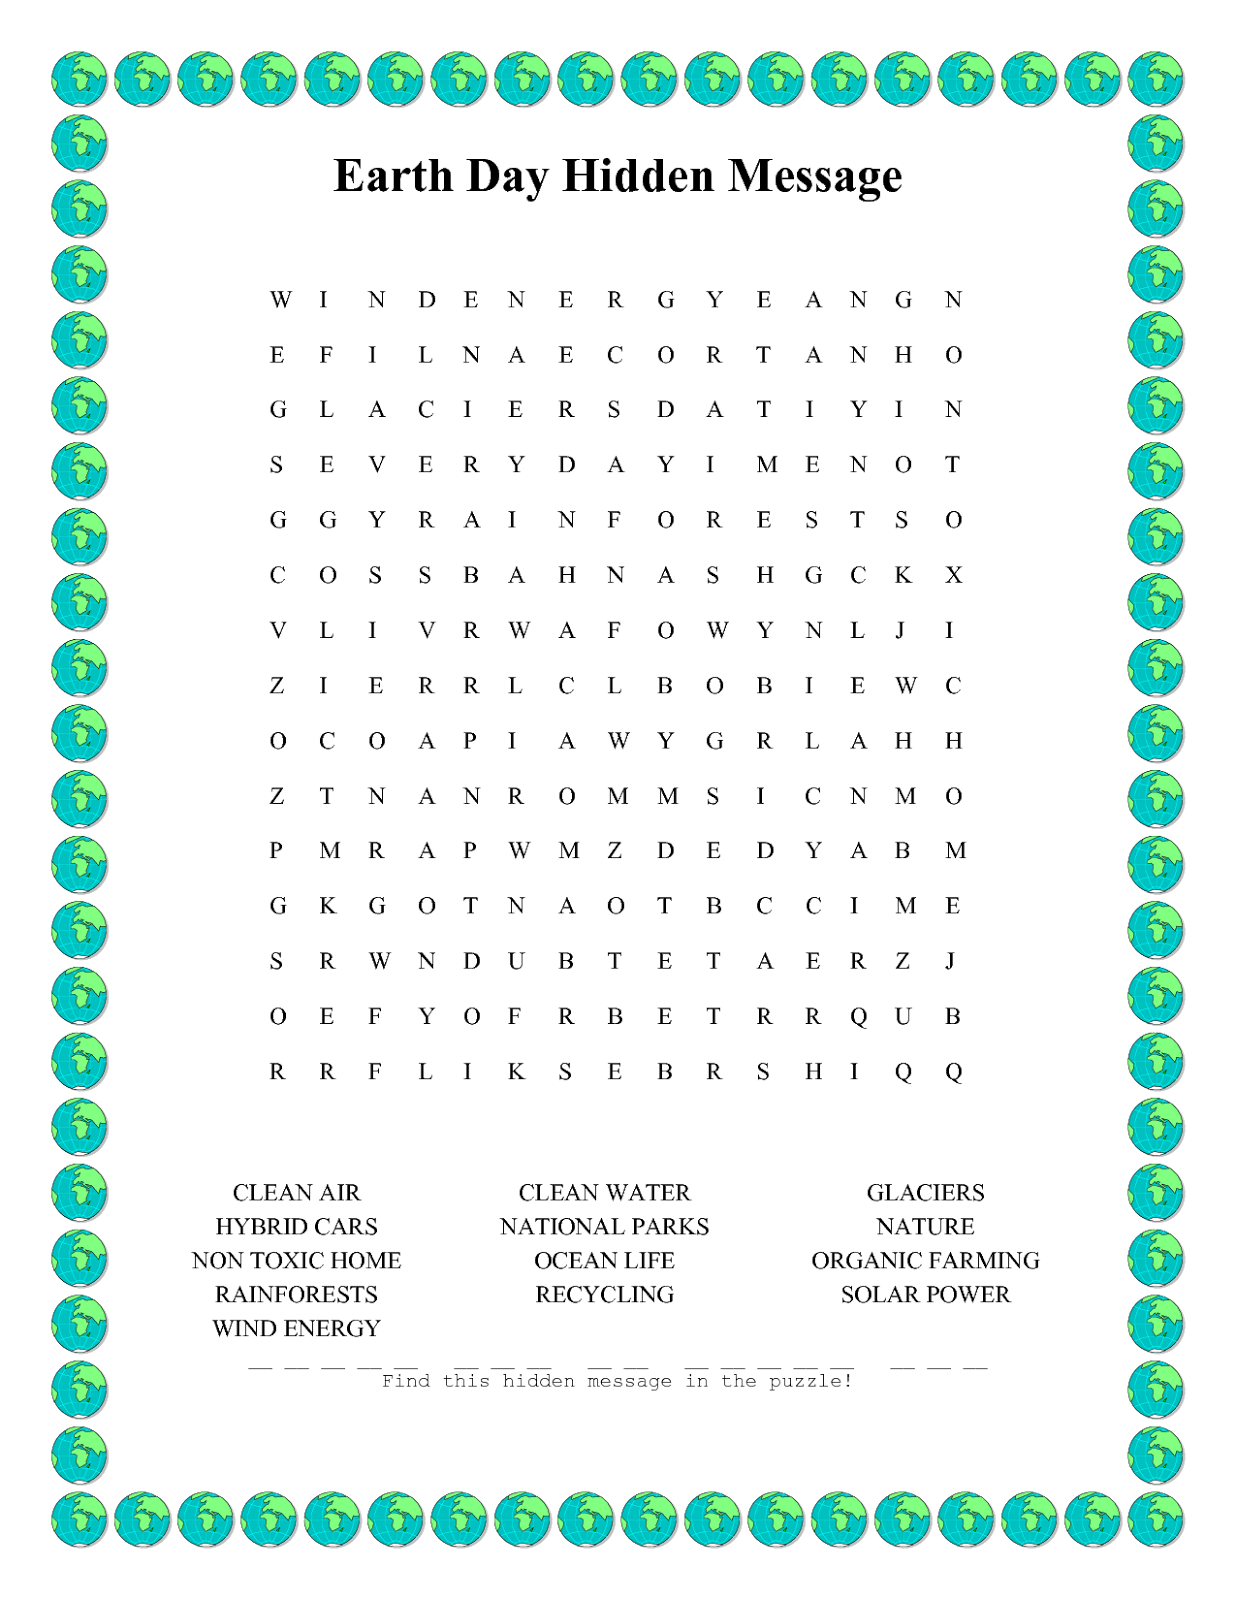 Top 10 Earth Day Word Search Printable For Kids